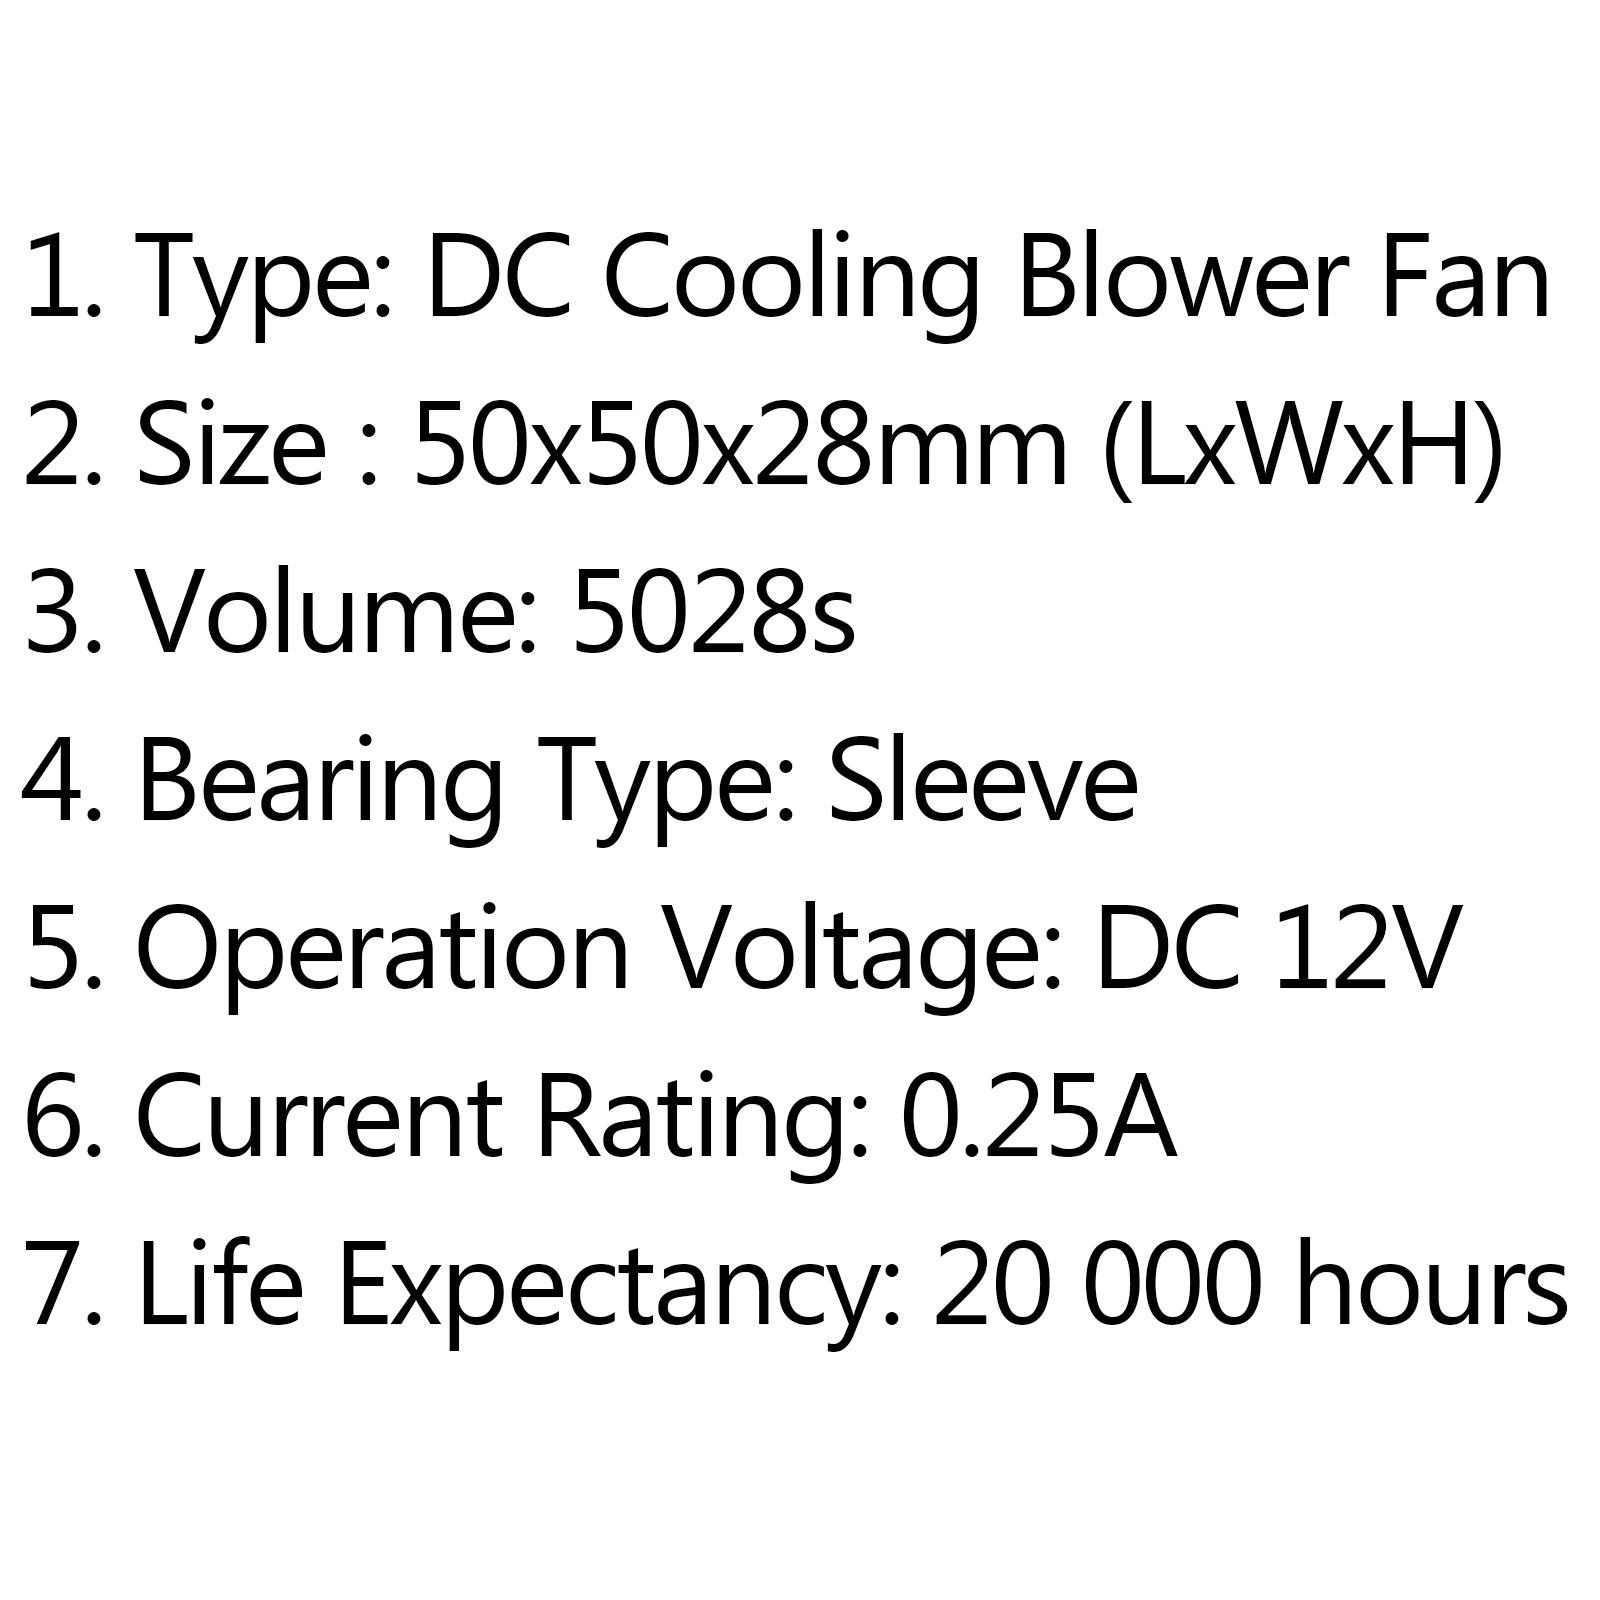 DC Brushless Cooling PC Computer Fan 12V 5028s 50x50x28mm